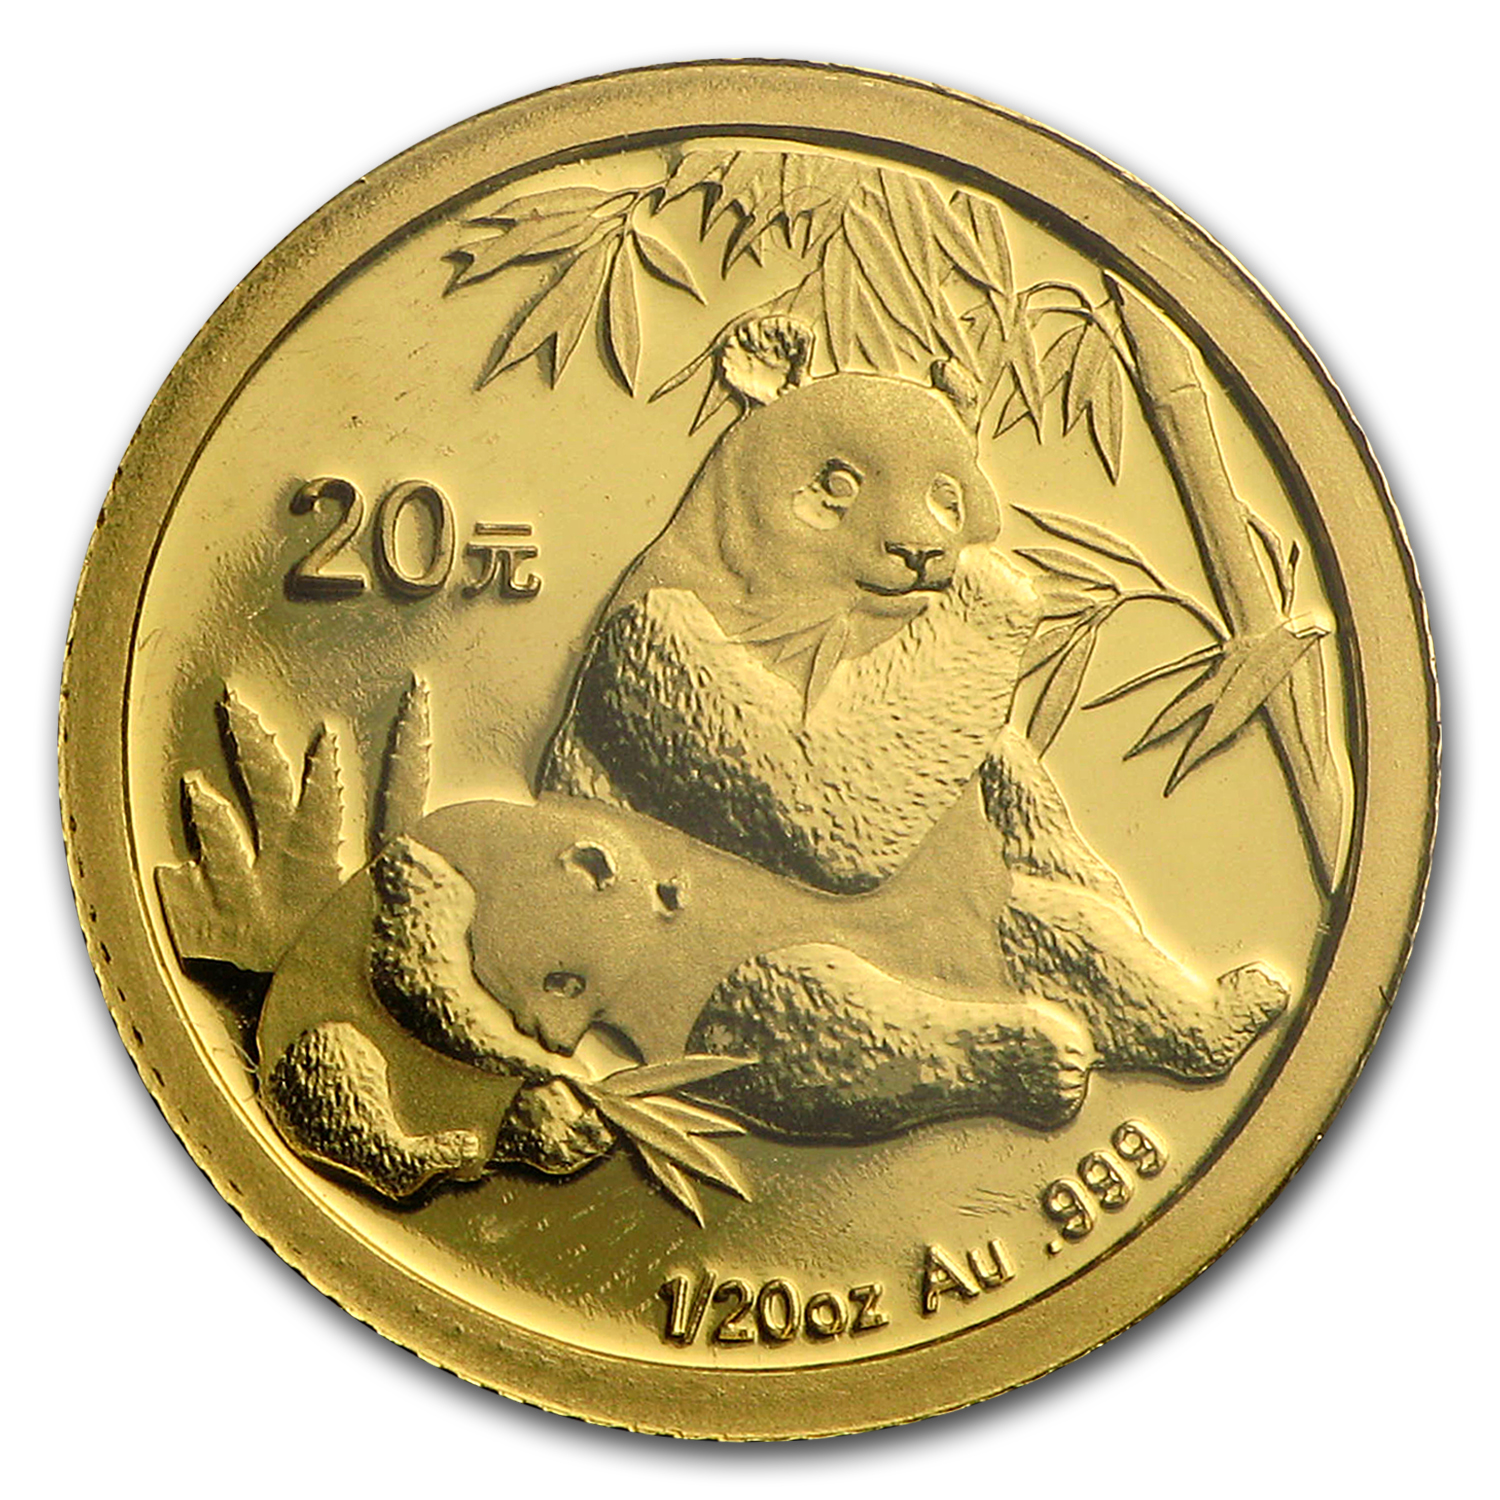 2007 China 1/20 oz Gold Panda BU (Sealed)